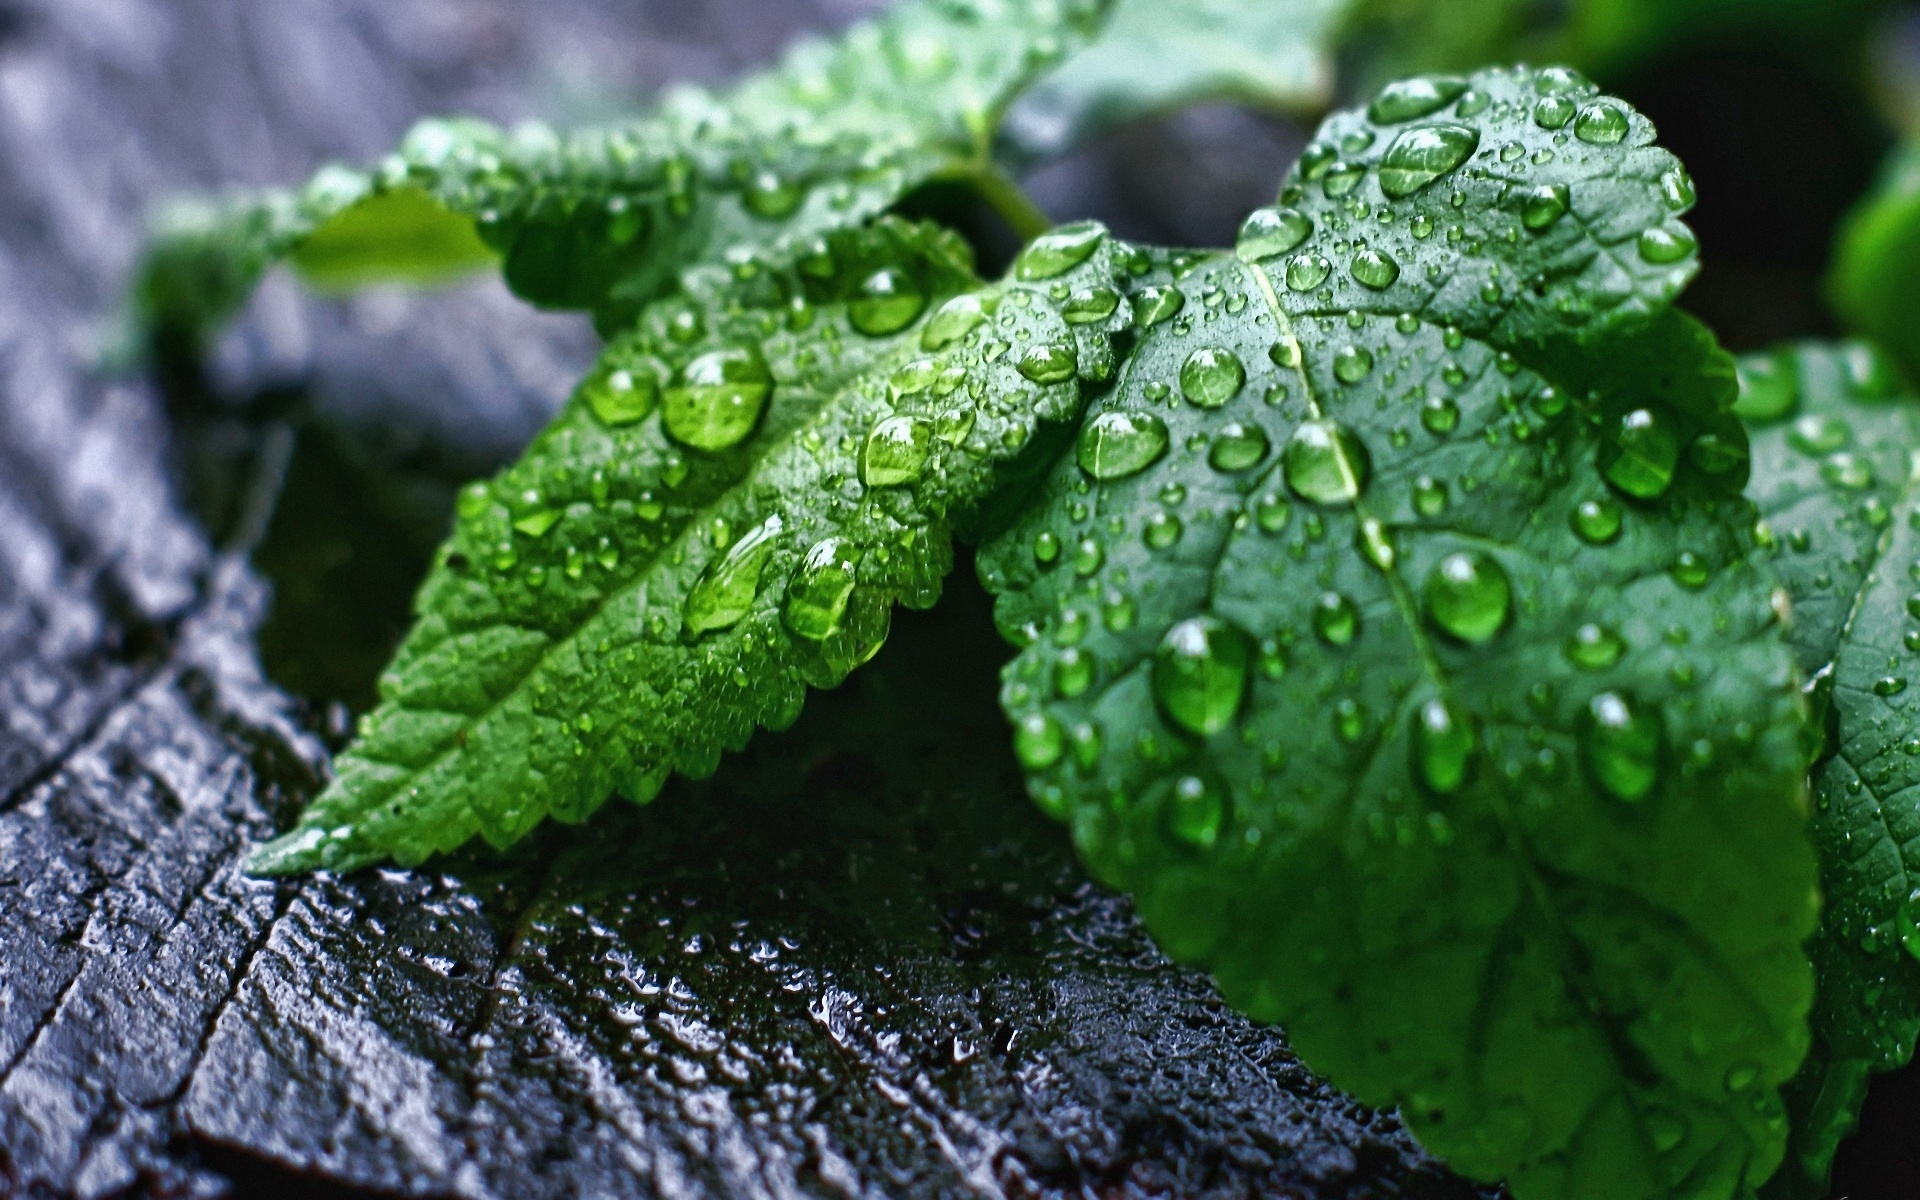 Wet Leaves Wallpapers - 1920x1200 - 834087